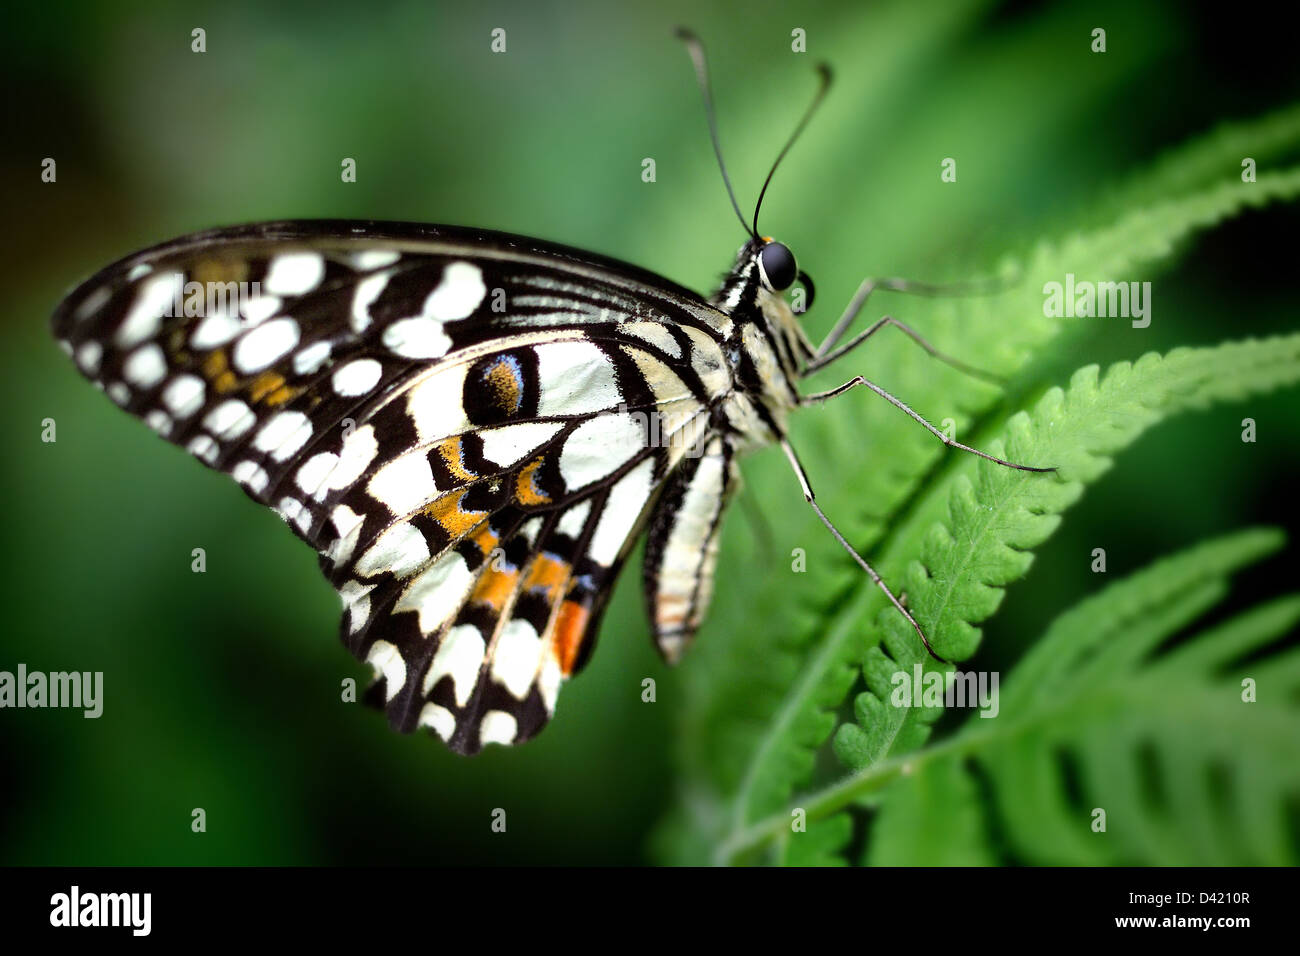 Exotic black white and orange butterfly stock photo 54134439 alamy